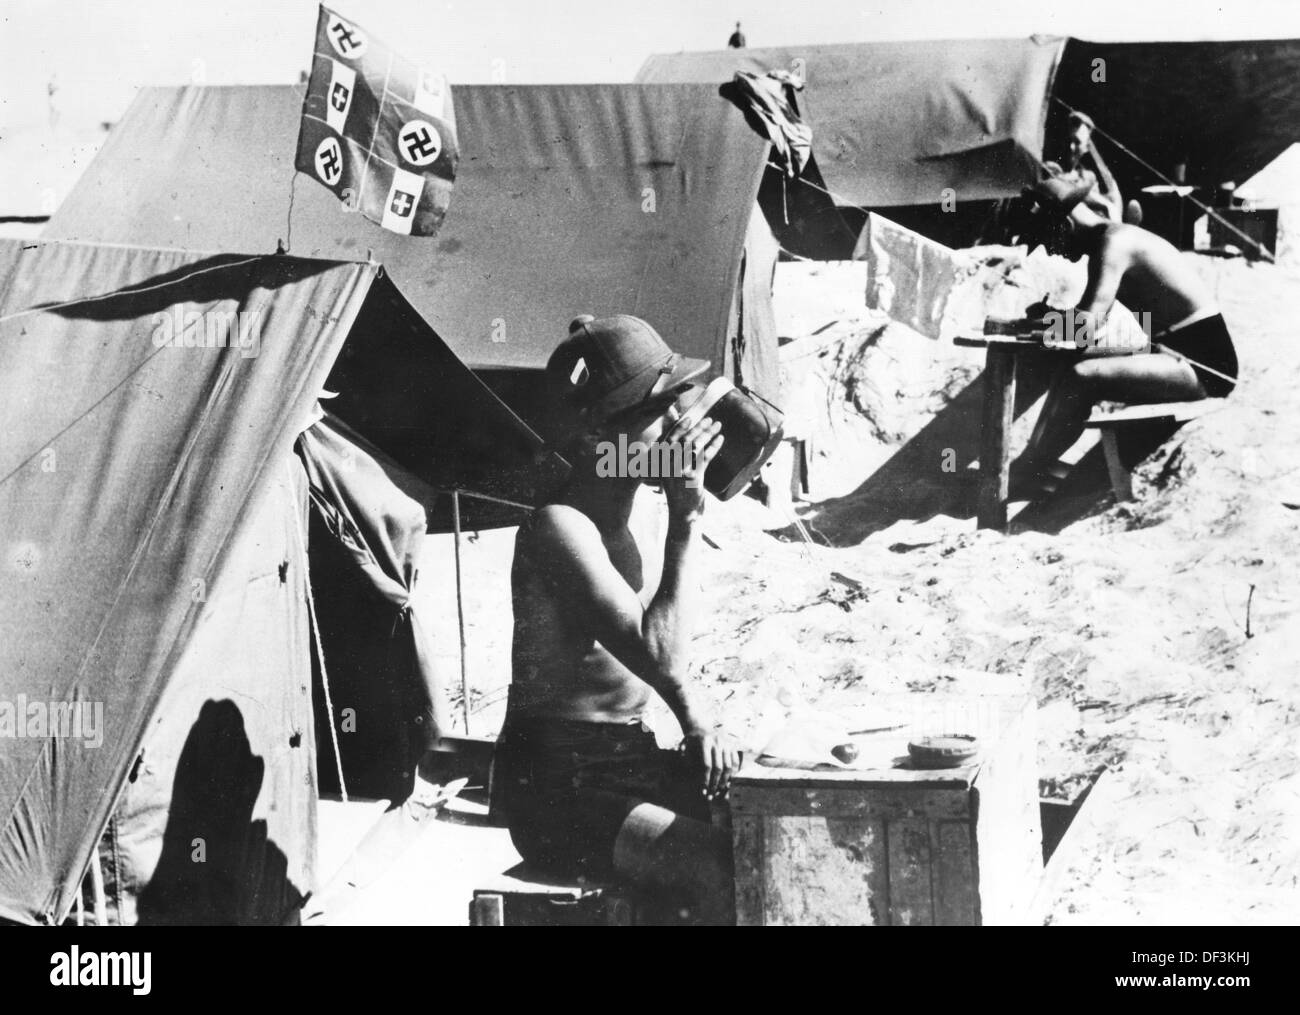 The image from the Nazi Propaganda! depicts soldiers of the German Wehrmacht in a tent city in Africa, published on 2 July 1942. Place unknown. Photo: Berliner Verlag/Archiv - Stock Image